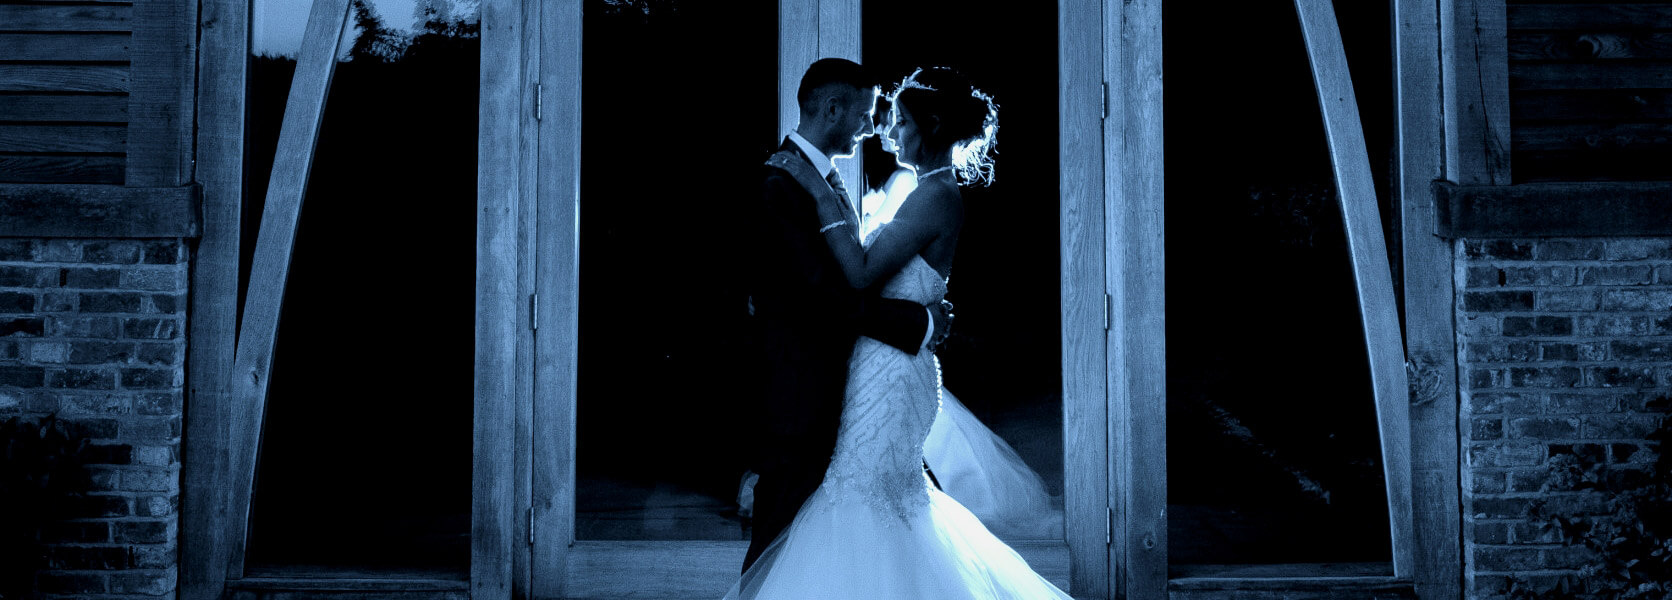 Gray scale image of couple embracing outside venue